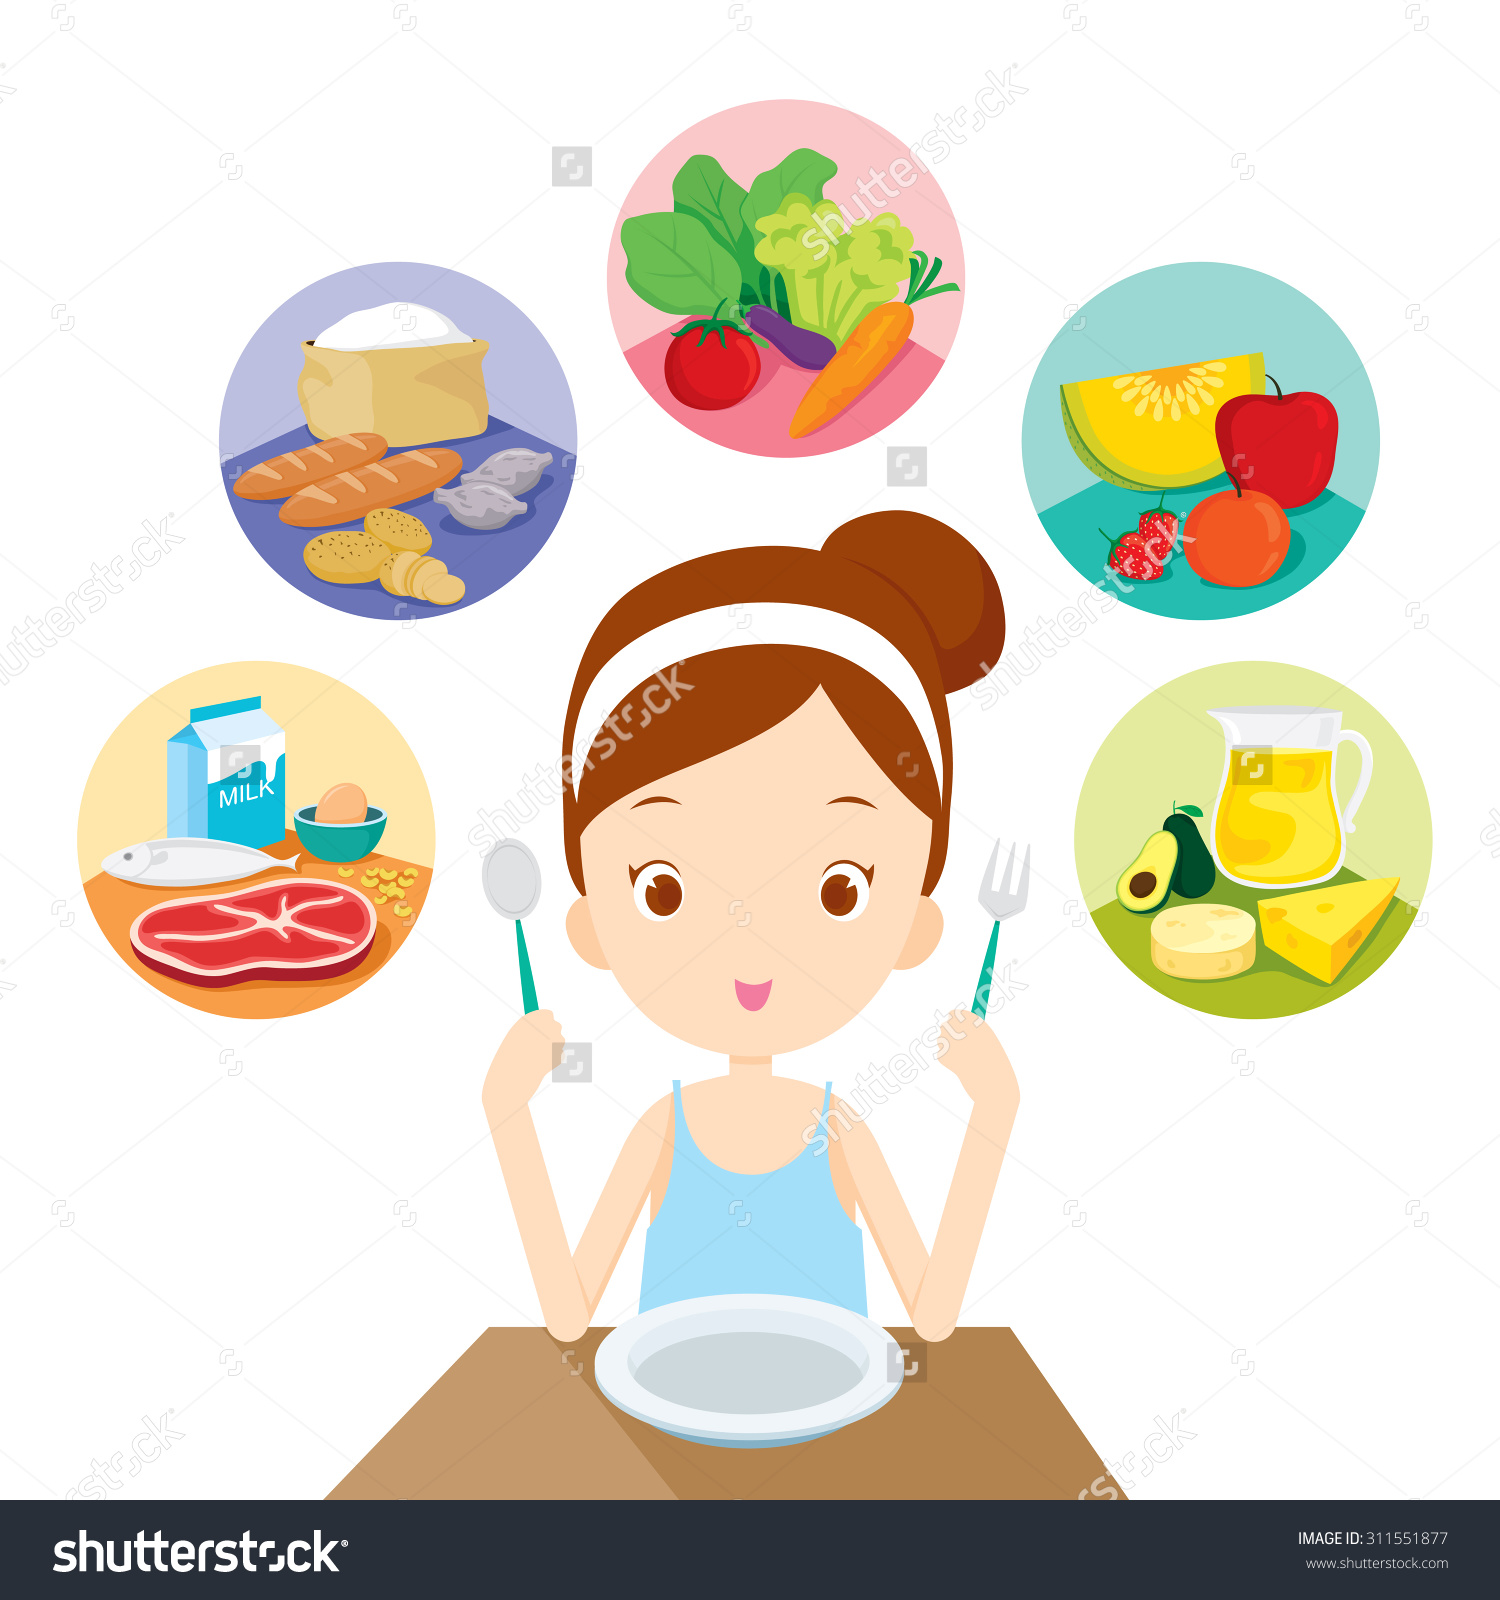 eating healthy food clipart 6 - Healthy Food Clipart